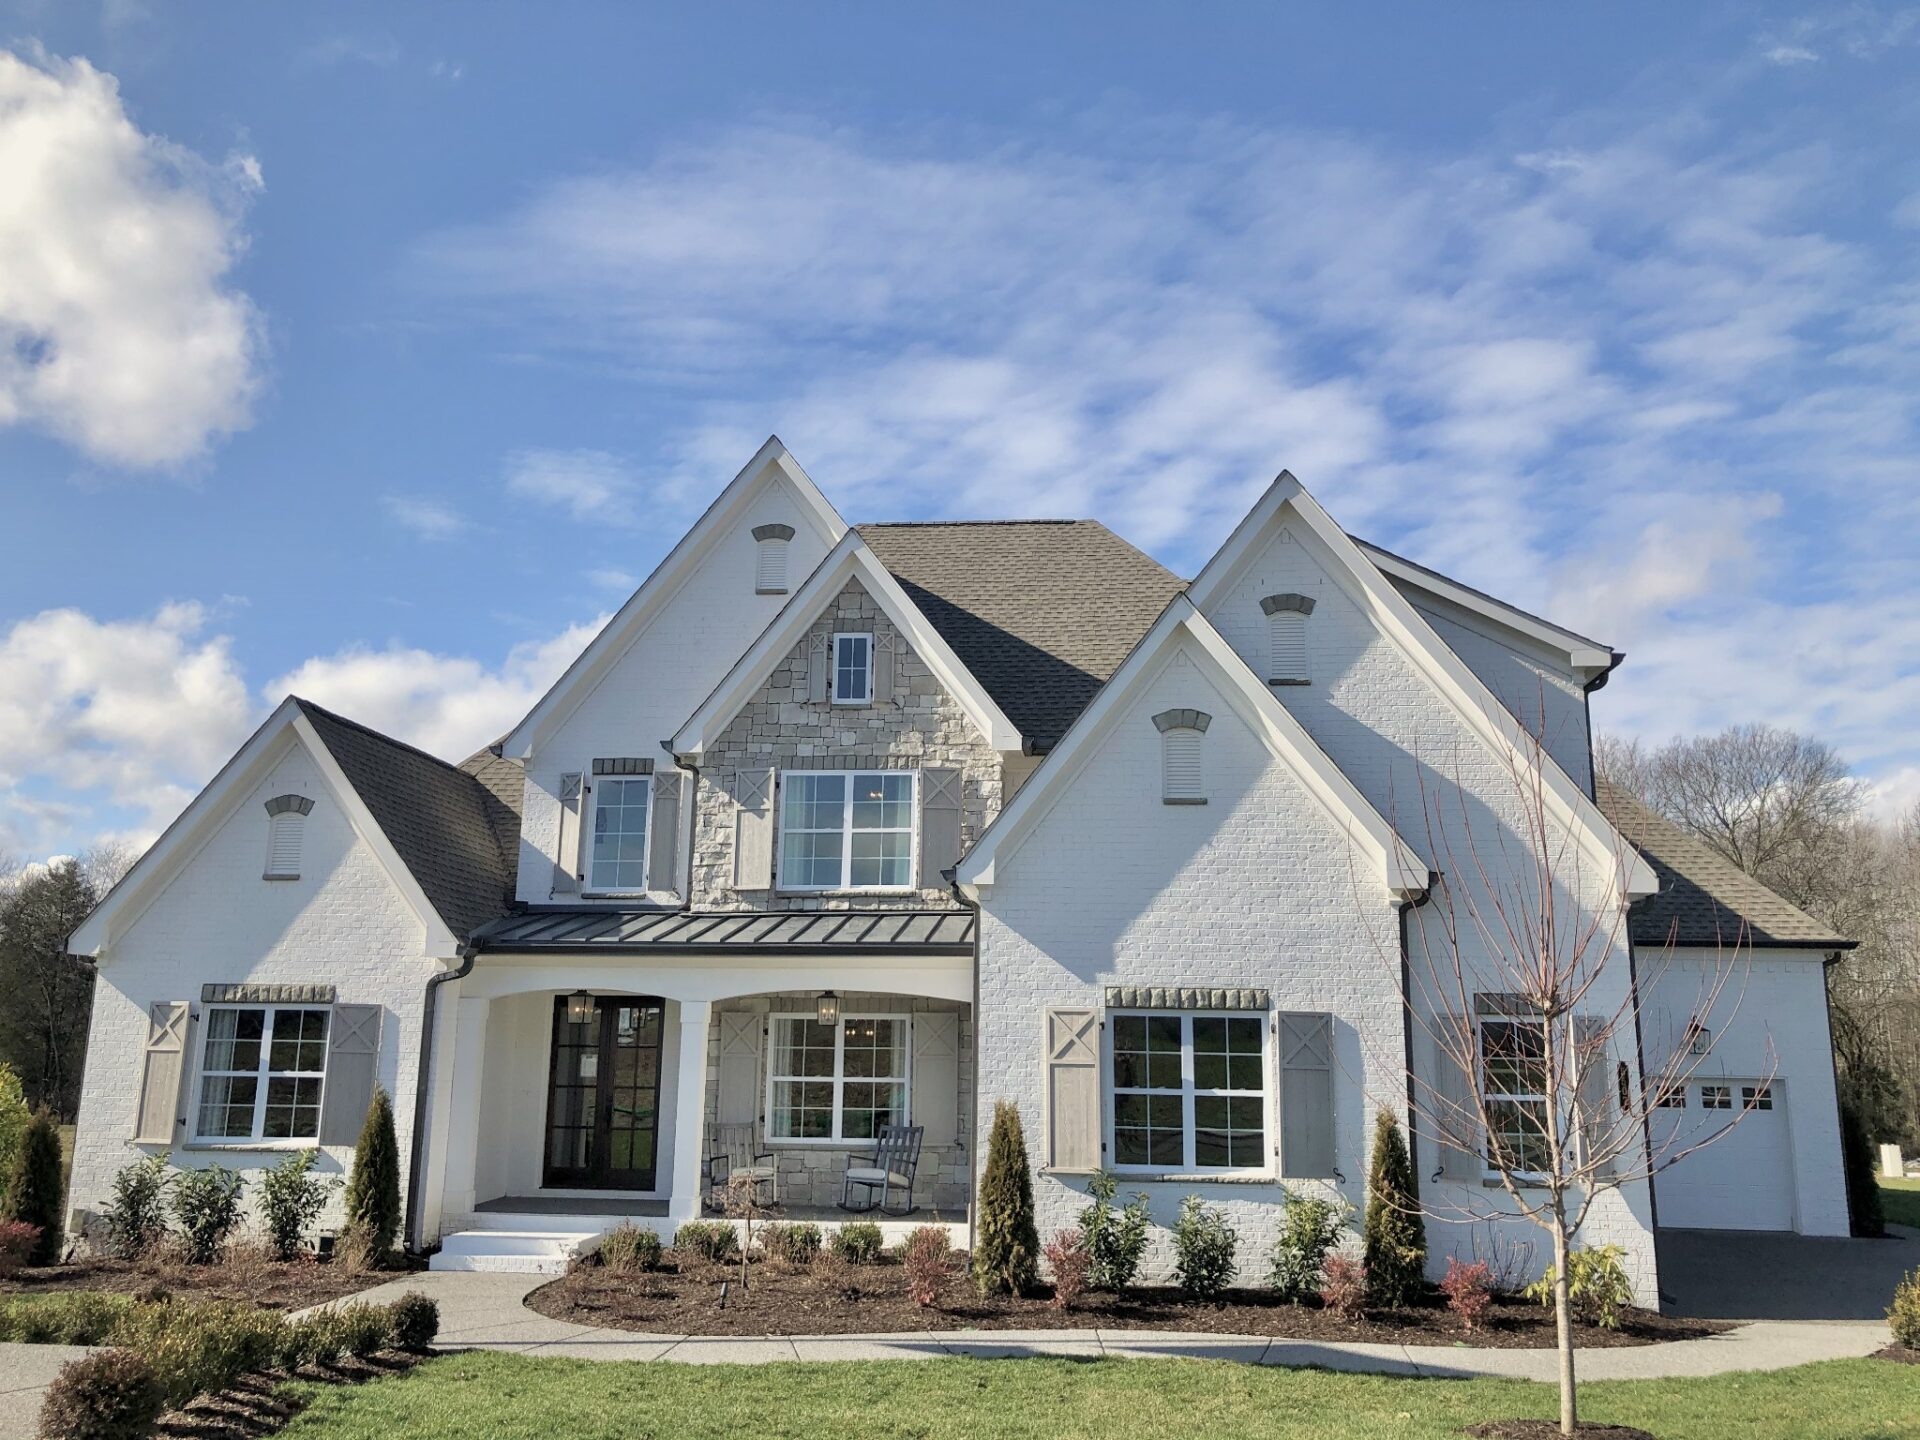 Side View of Front - Premier, High-end home builders for luxury homes - luxury home builder   Nashville, TN